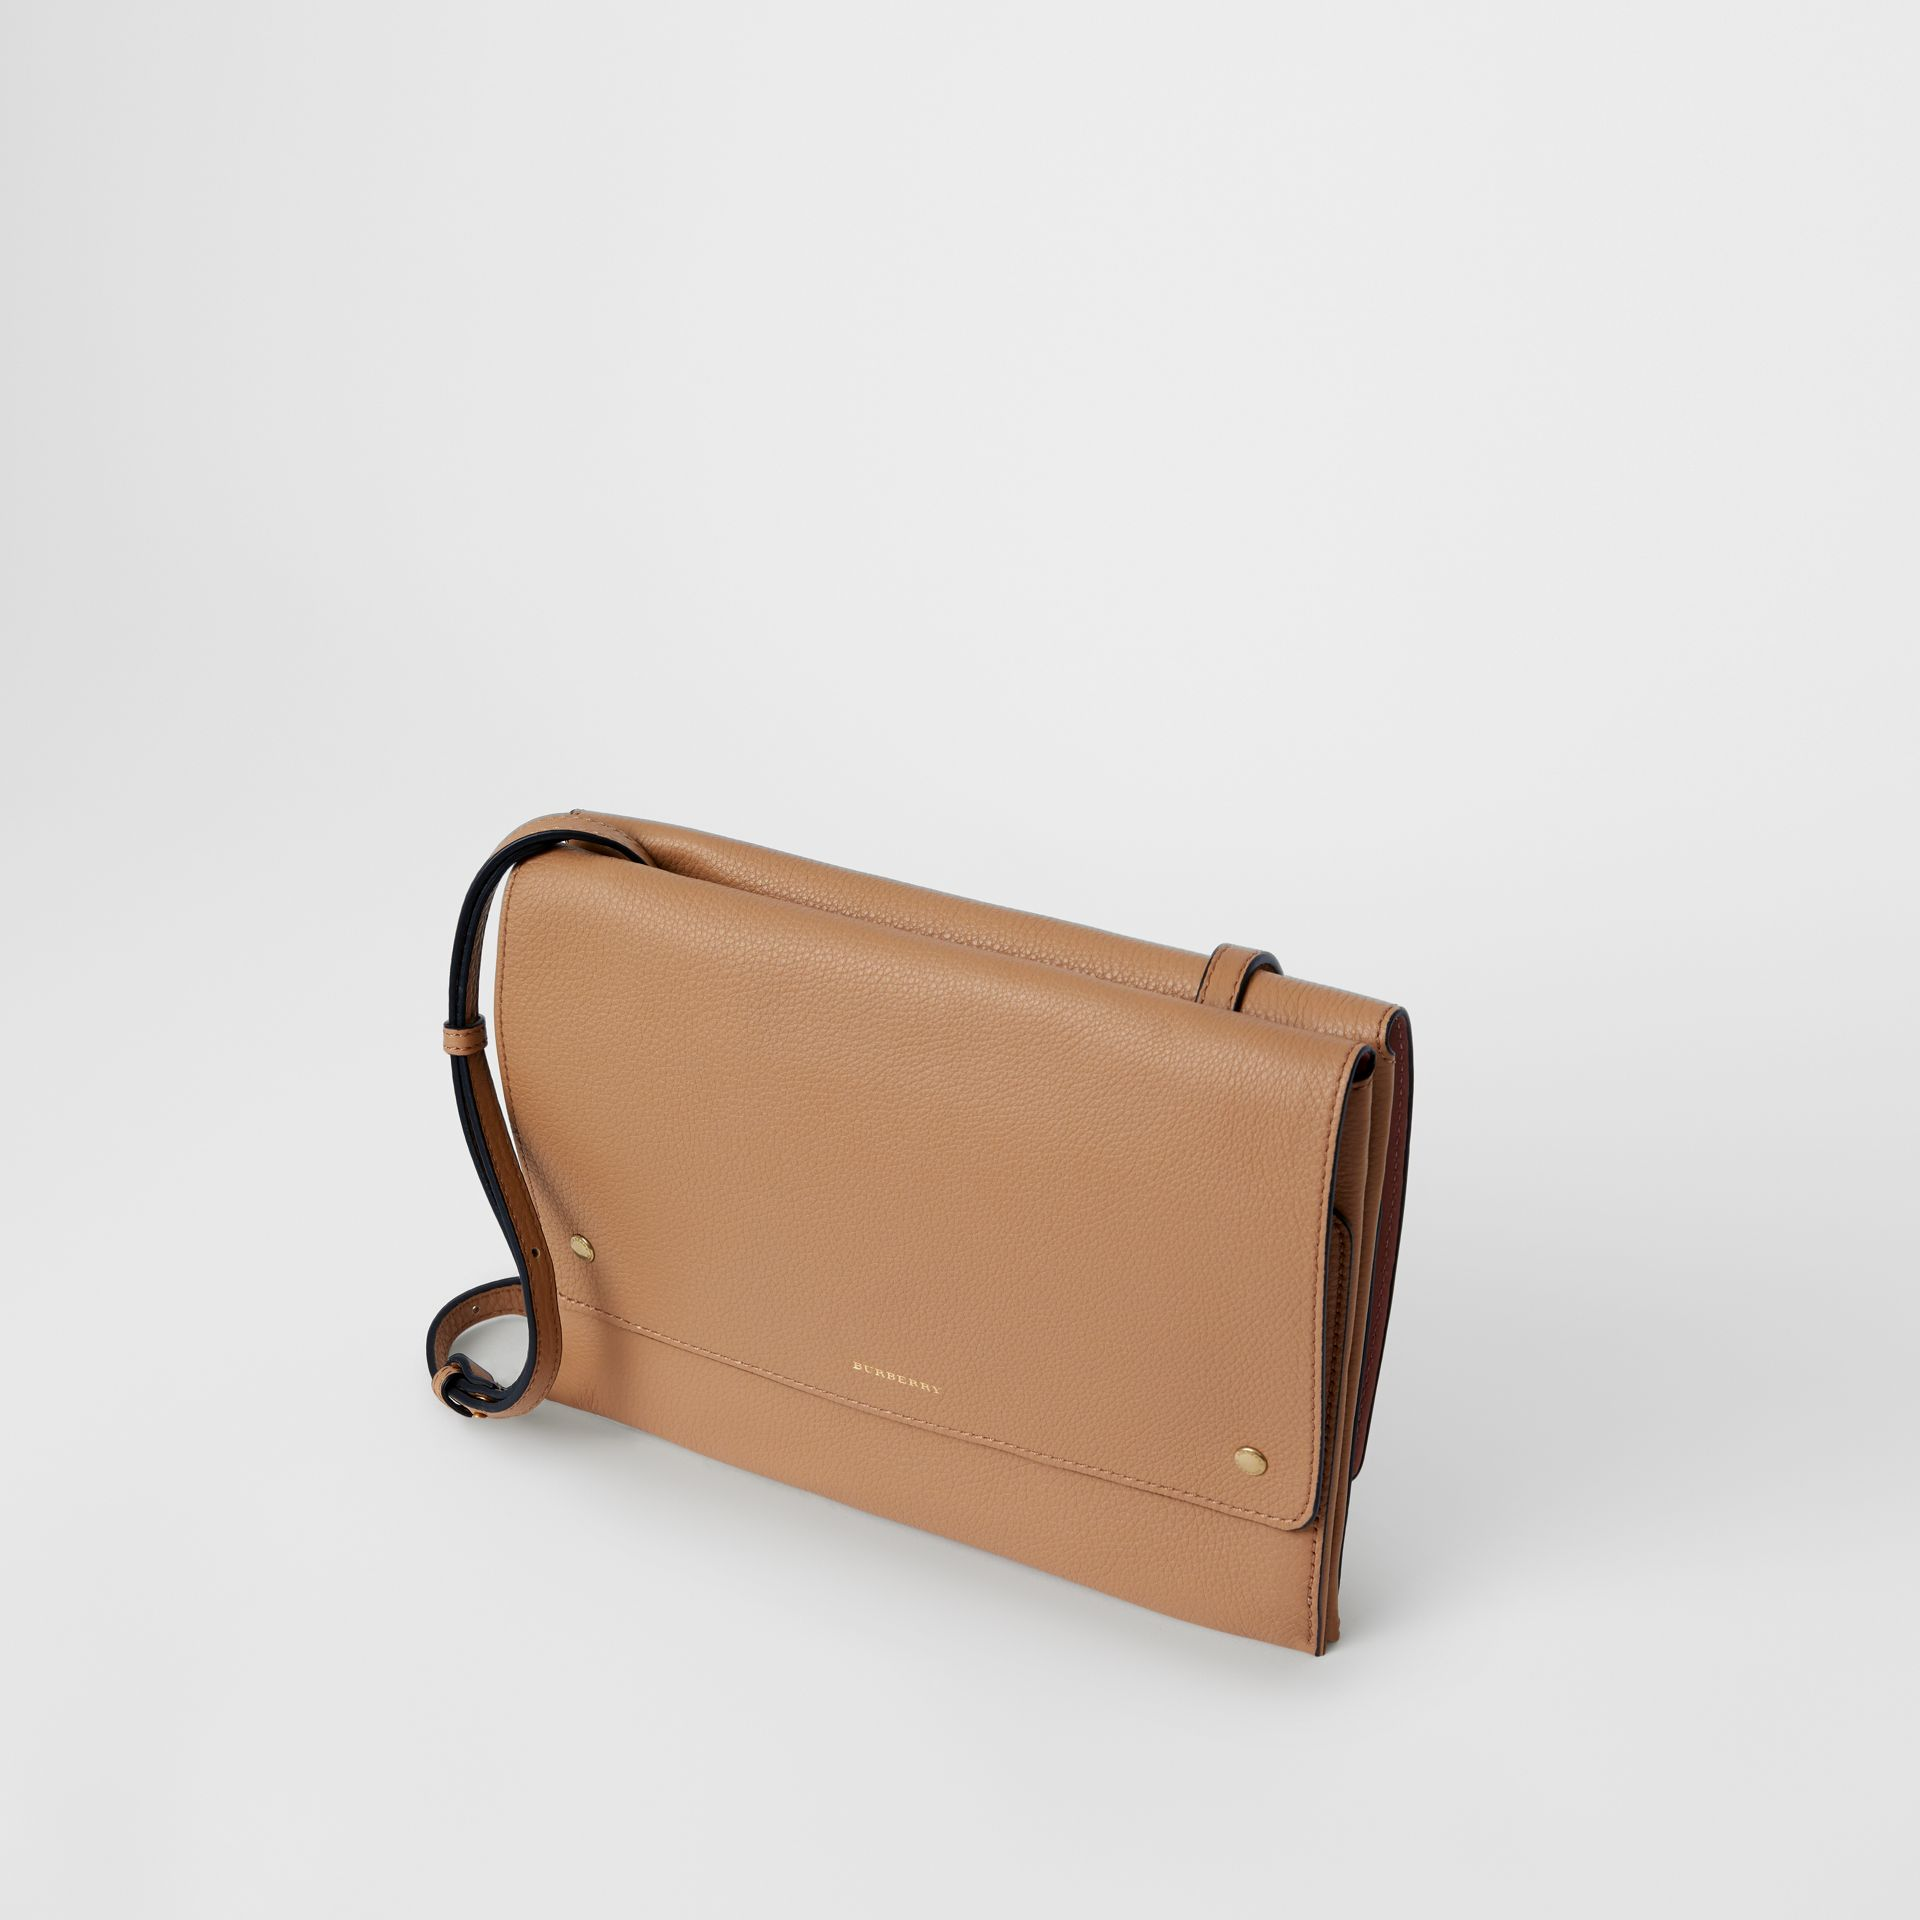 Leather Pouch with Detachable Strap in Light Camel - Women | Burberry United States - gallery image 4